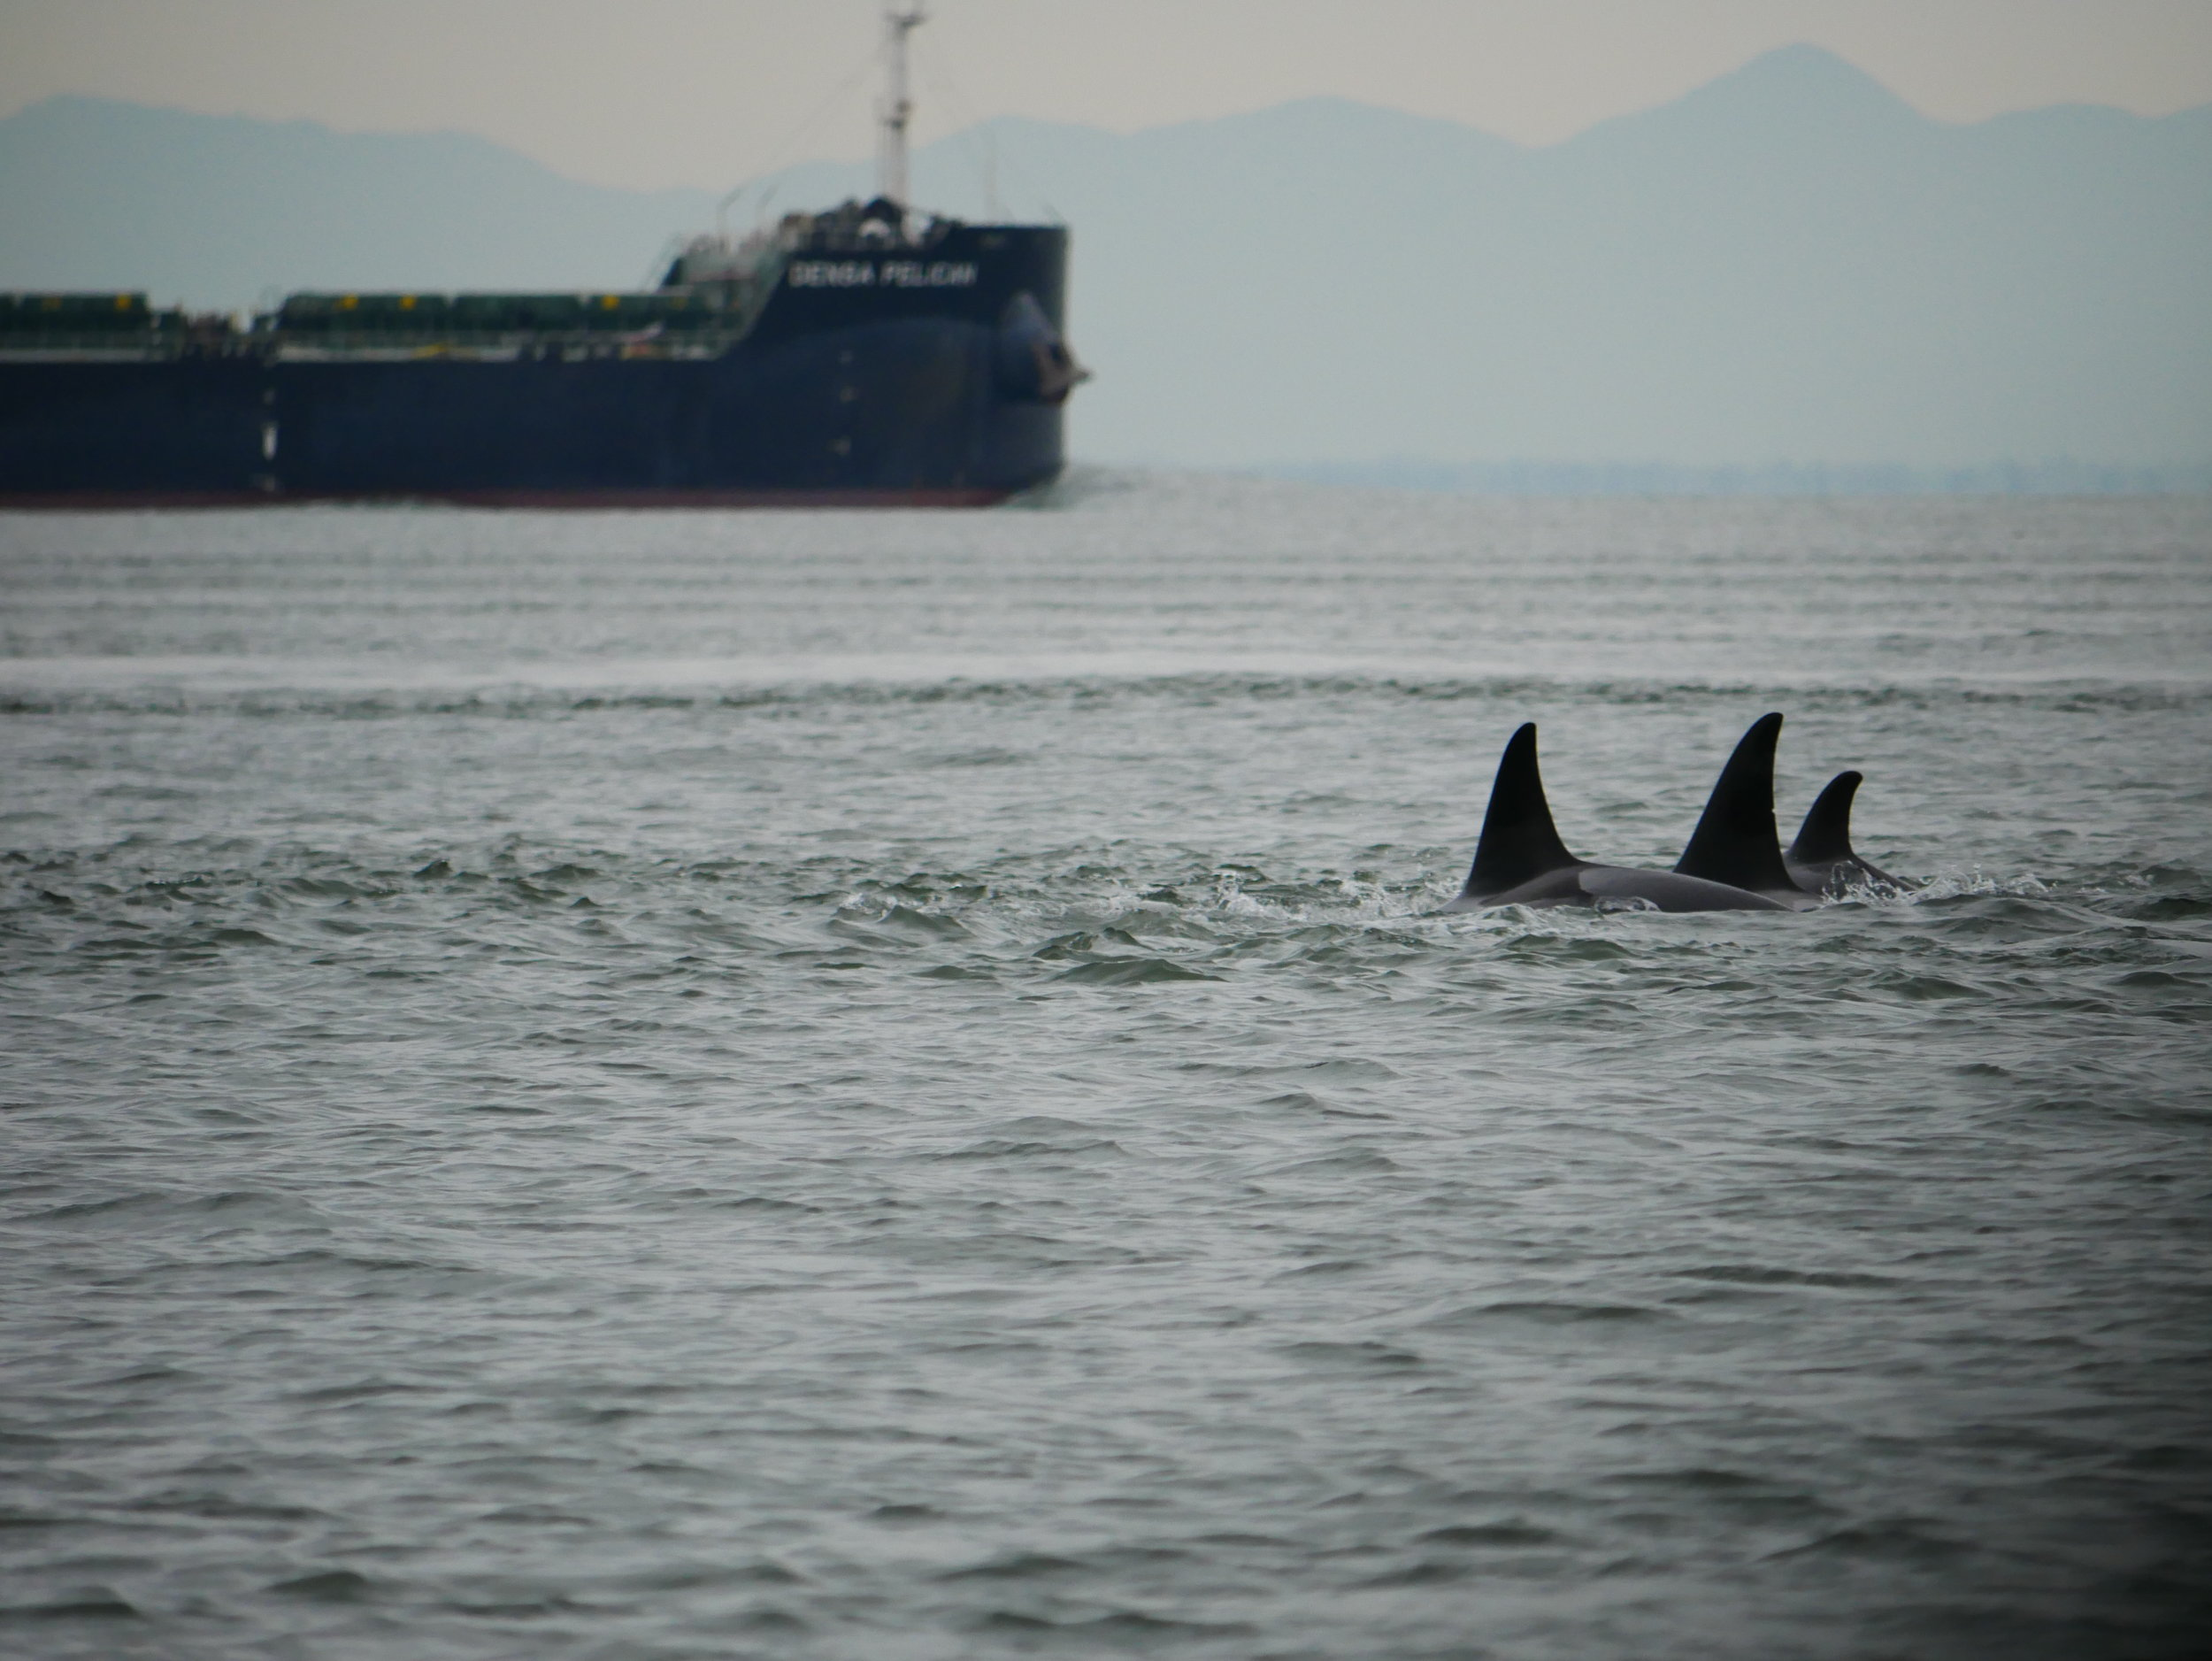 Three transient orca using their environment to their advantage. The rippling patches in the water is disturbance where two tides are meeting. Photo by Alanna Vivani.